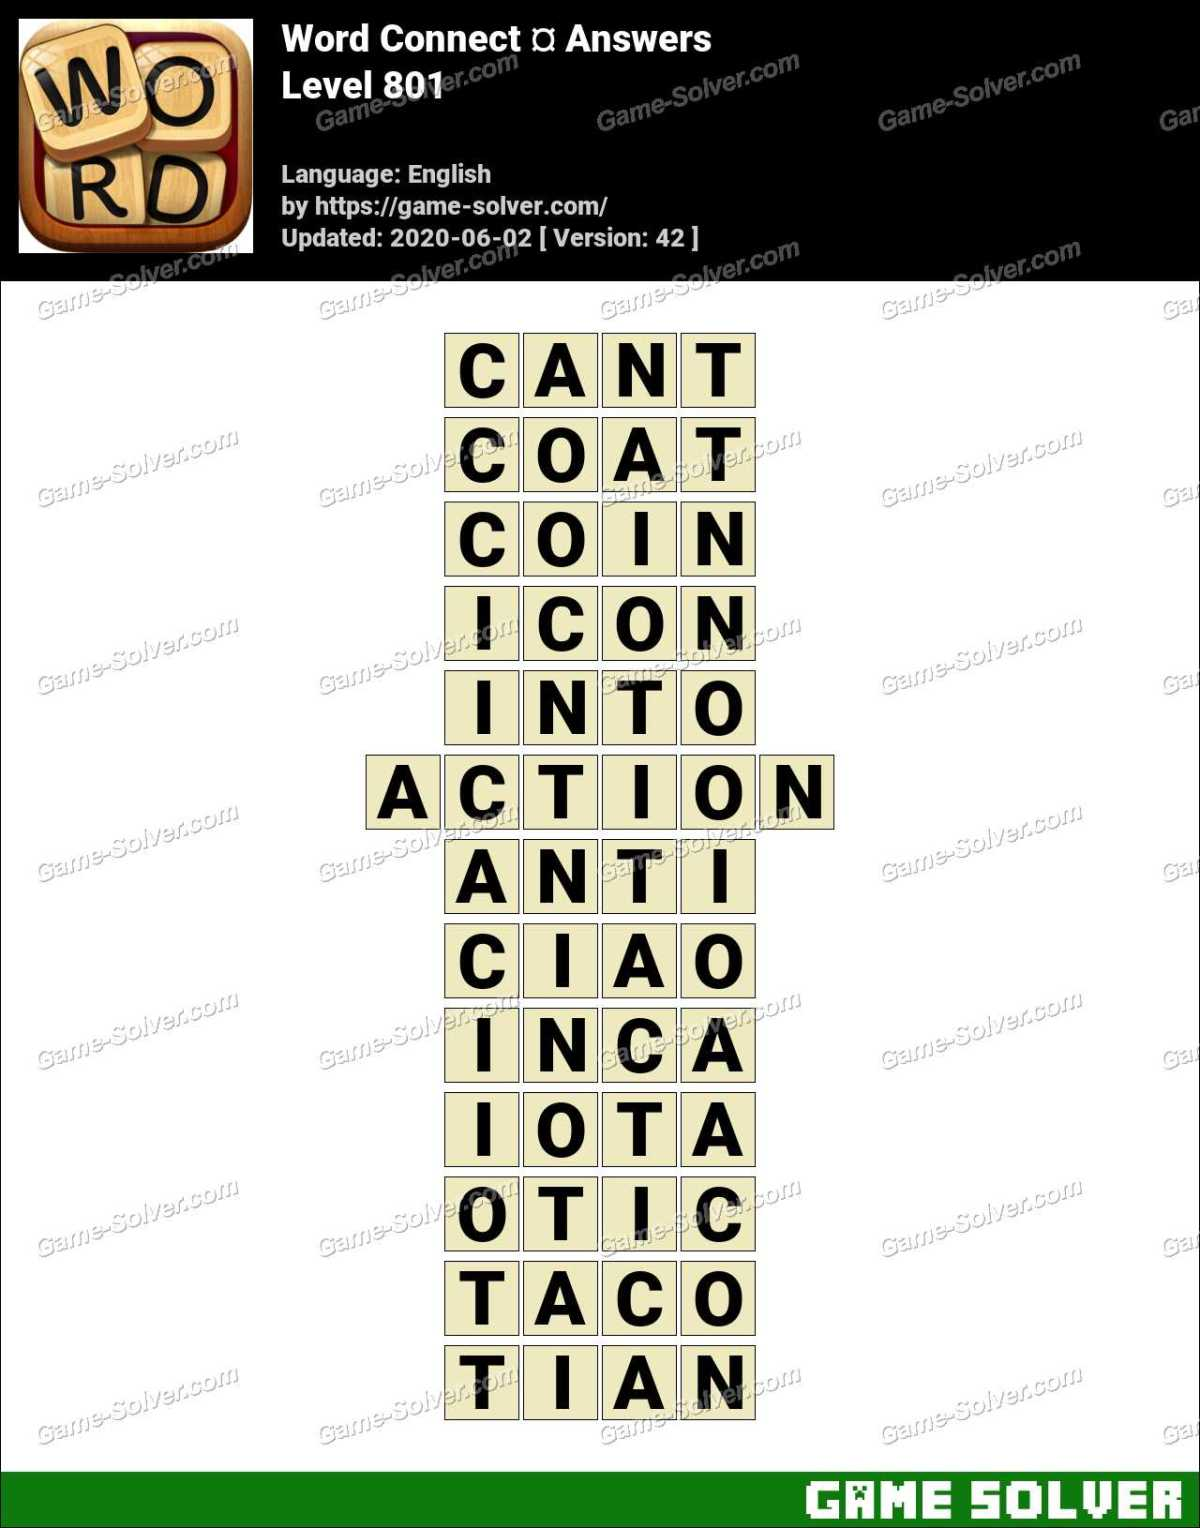 Word Connect Level 801 Answers